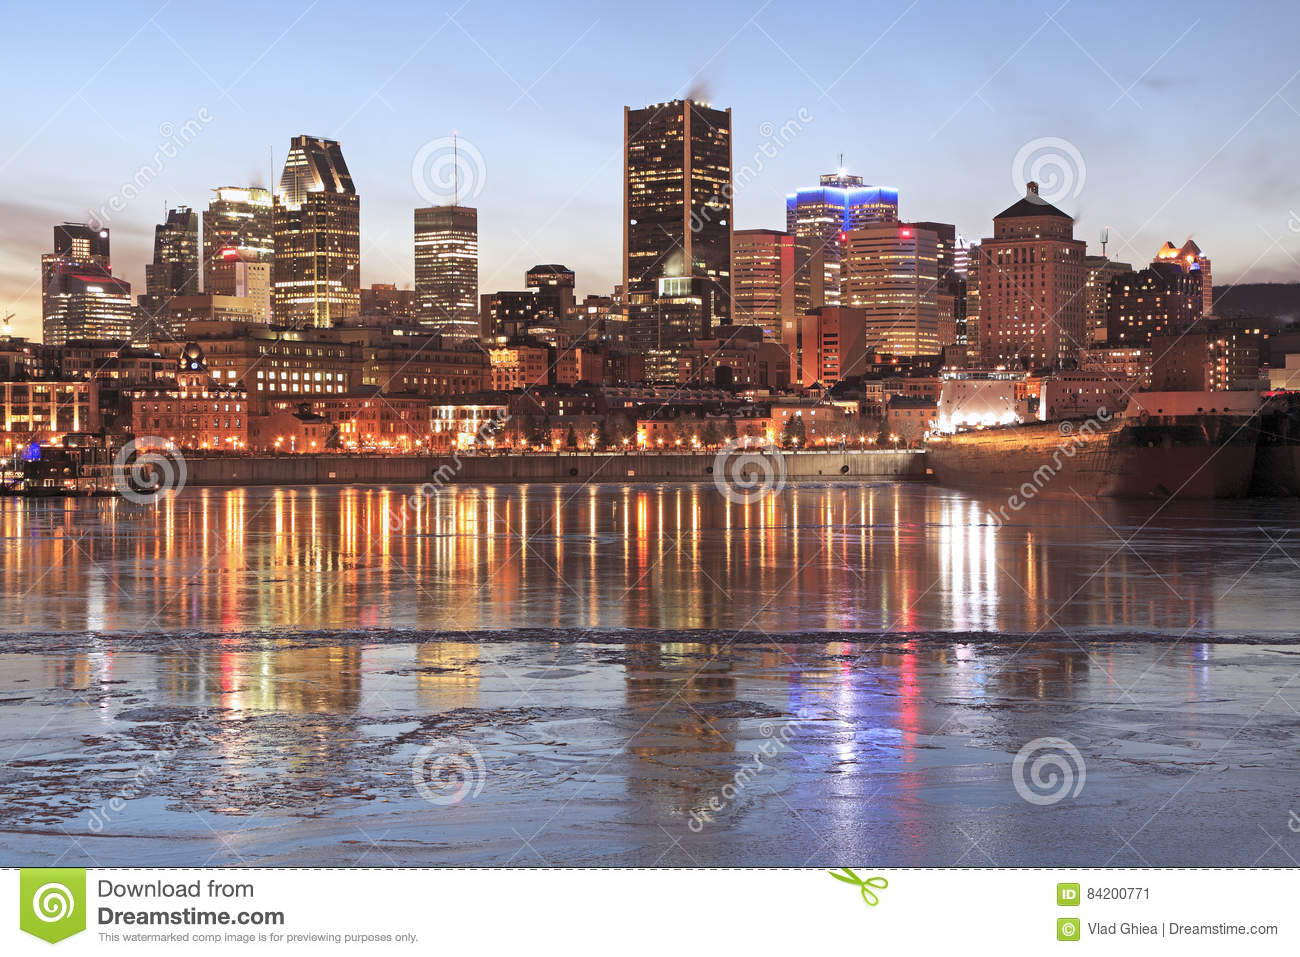 Montreal skyline at dusk in winter